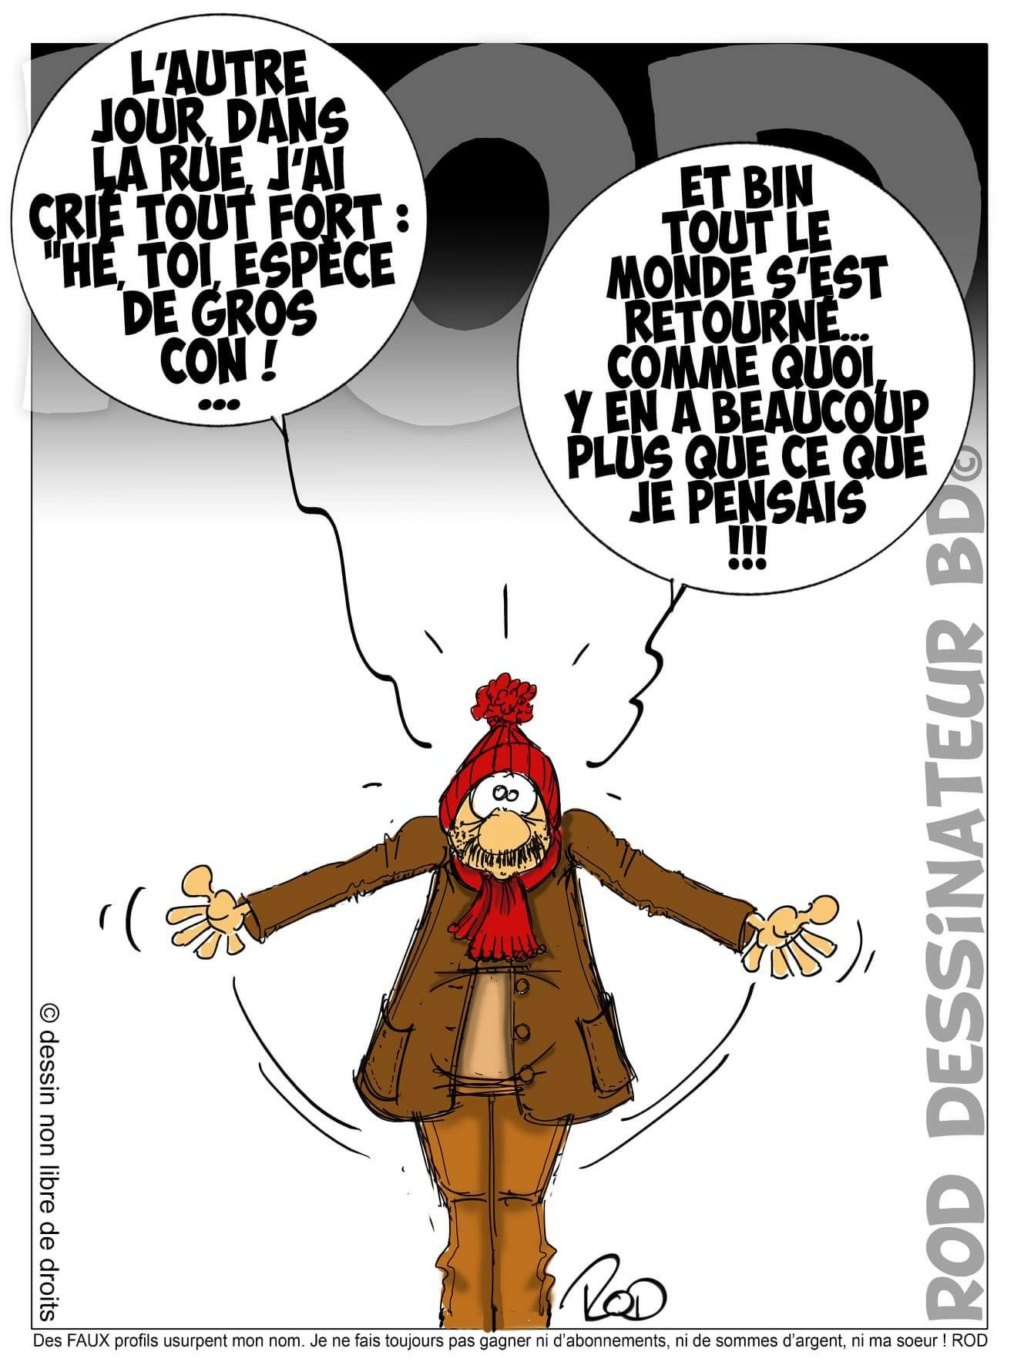 Humour en image du Forum Passion-Harley  ... - Page 9 Img-2032